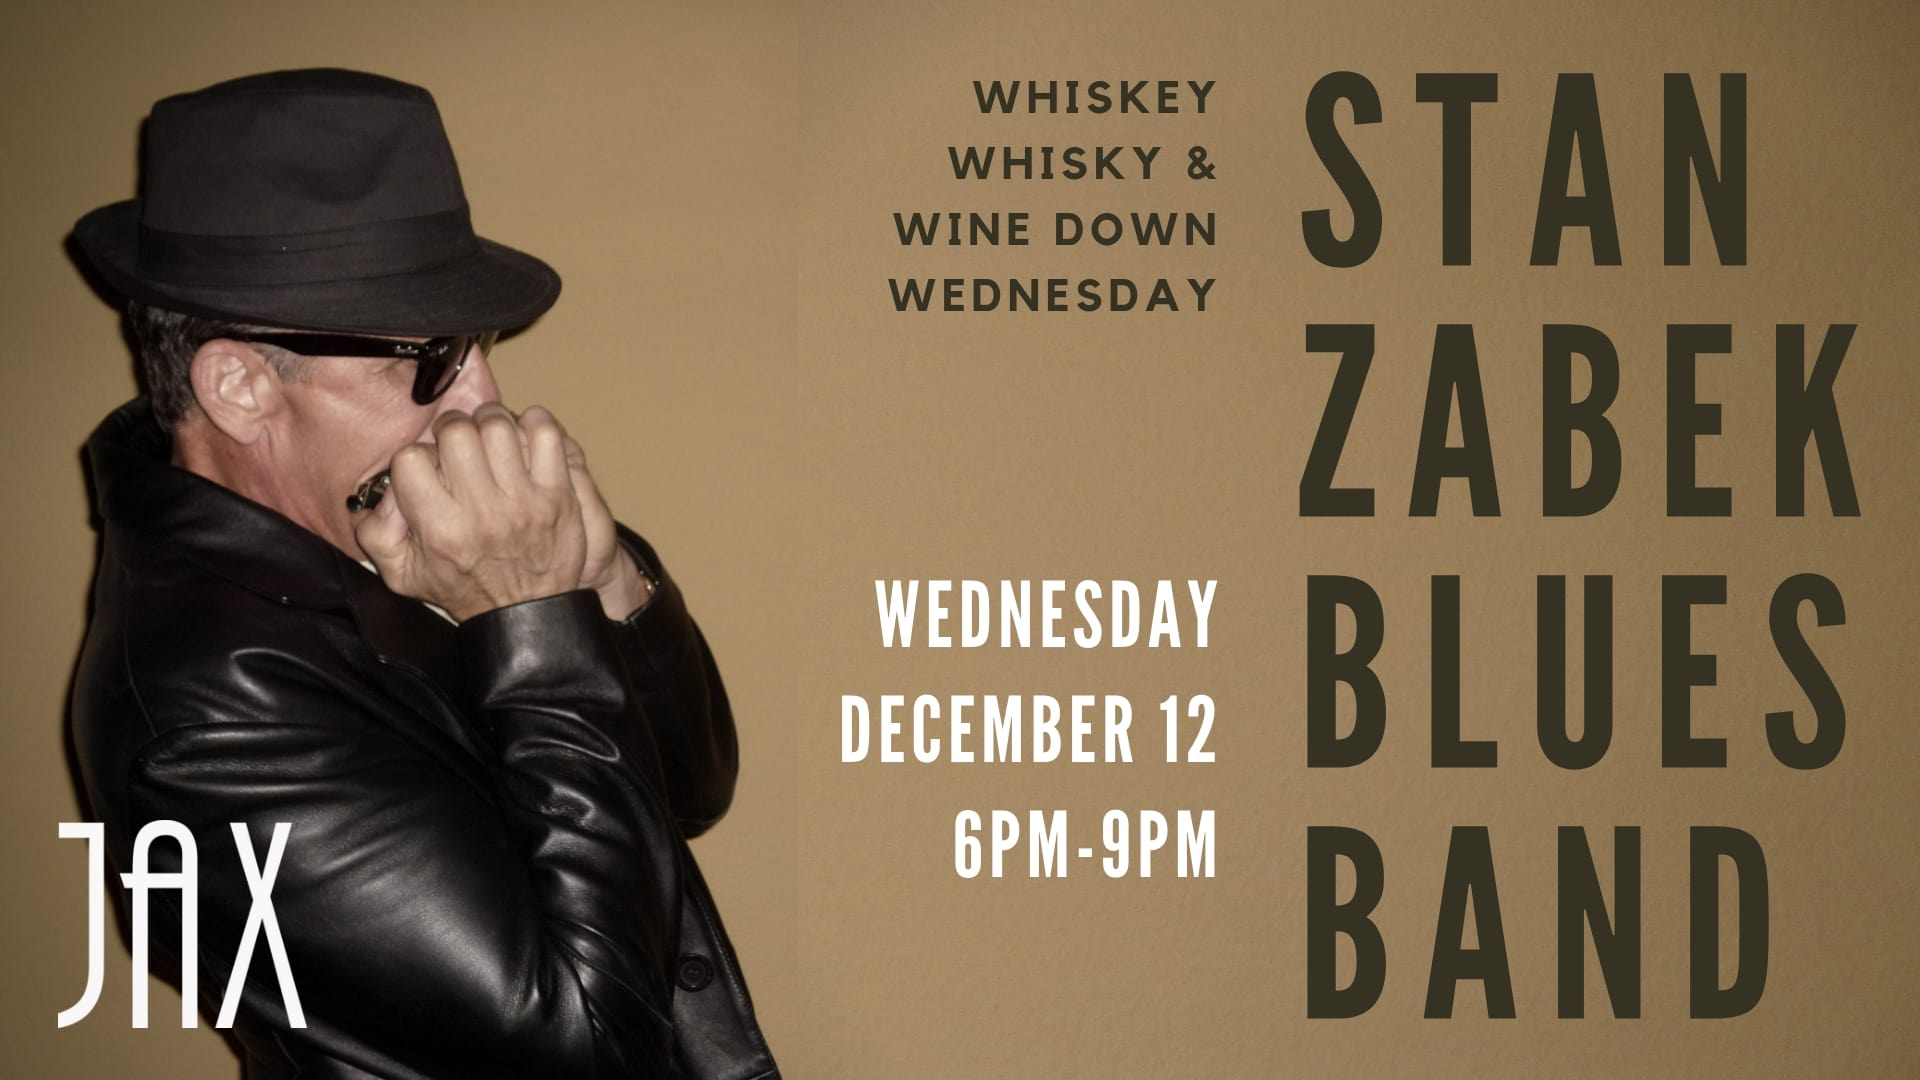 December 12 | WHISKEY WHISKY & WINE DOWN WEDNESDAY with THE STAN ZABEK BLUES BAND